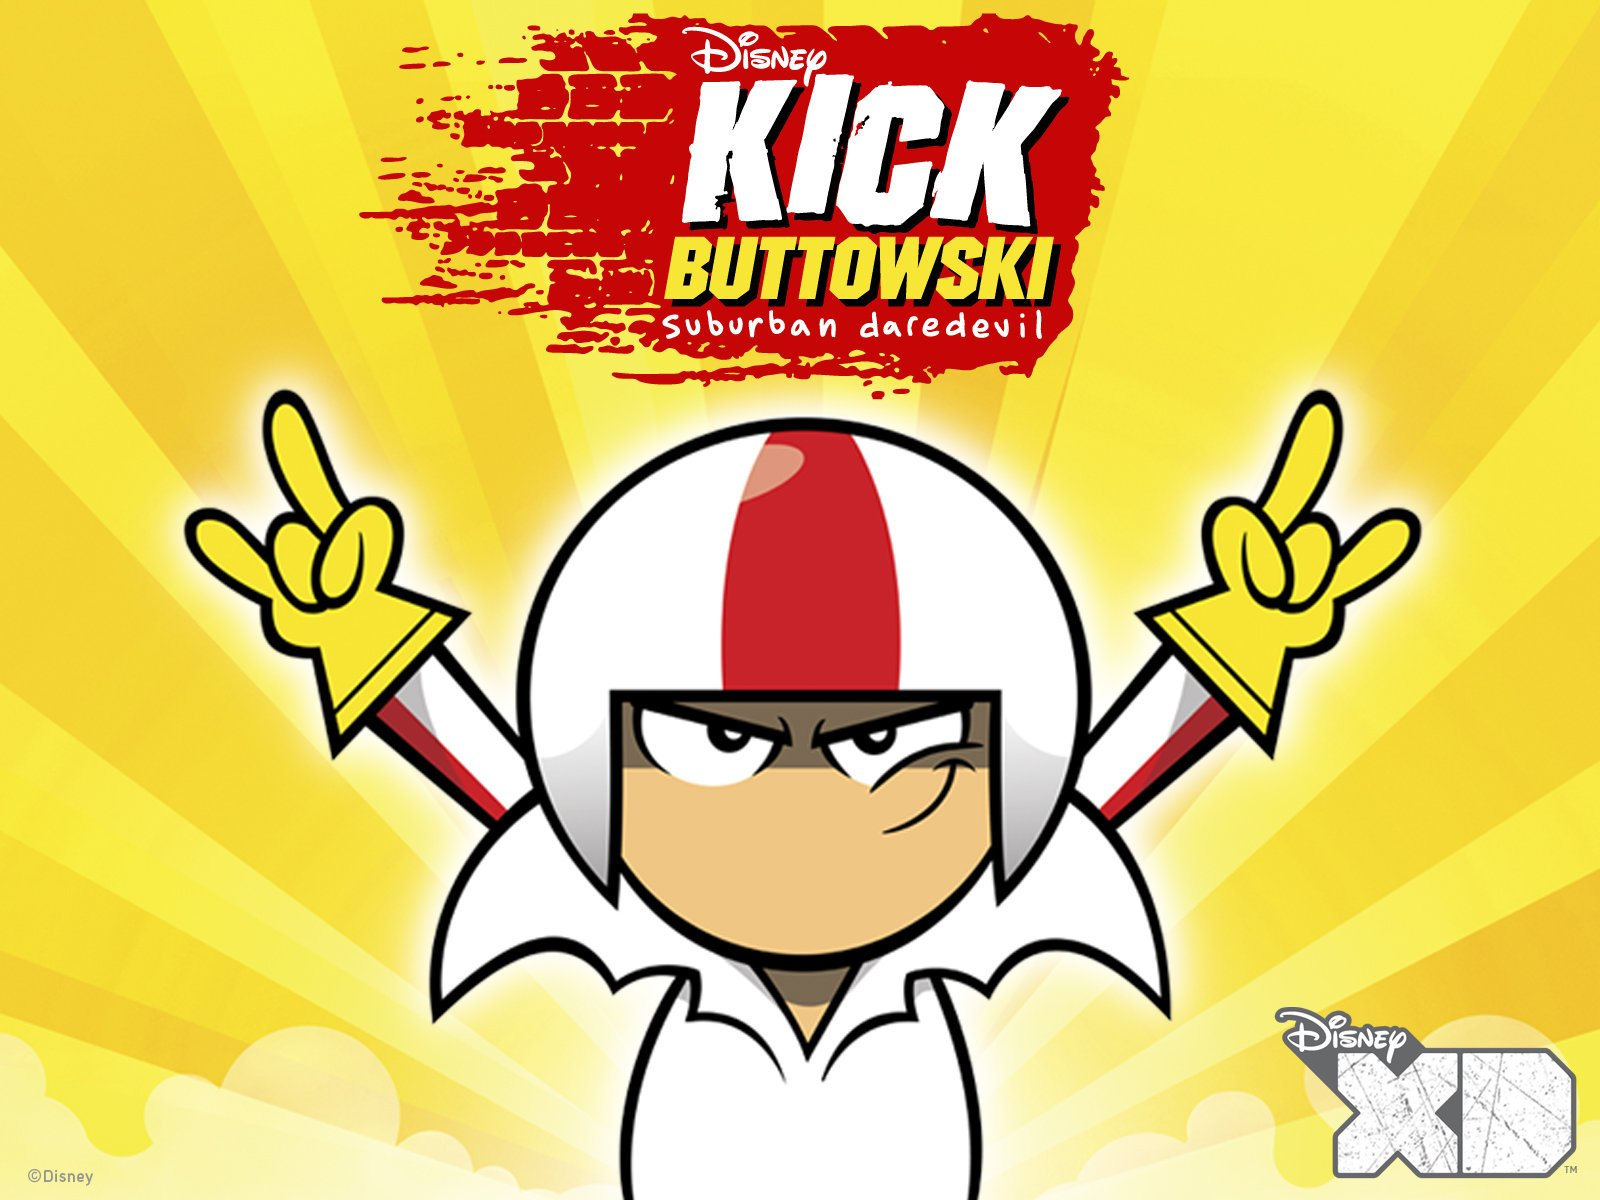 Amazon.com: Kick Buttowski: Suburban Daredevil Volume 1: Amazon Digital Services LLC